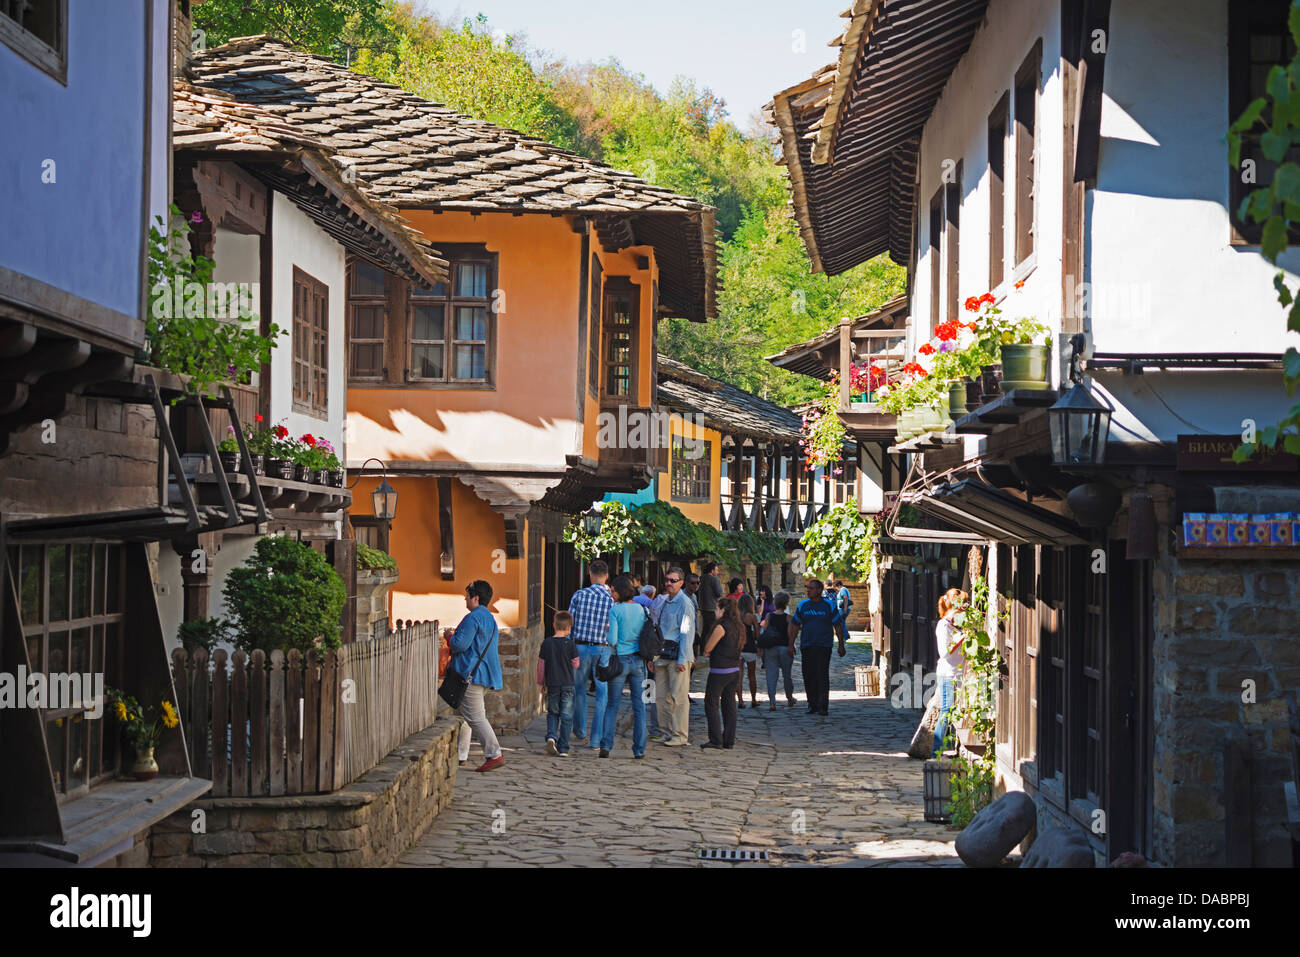 Etar Ethnographic Village Museum, Etar, Bulgaria, Europe - Stock Image